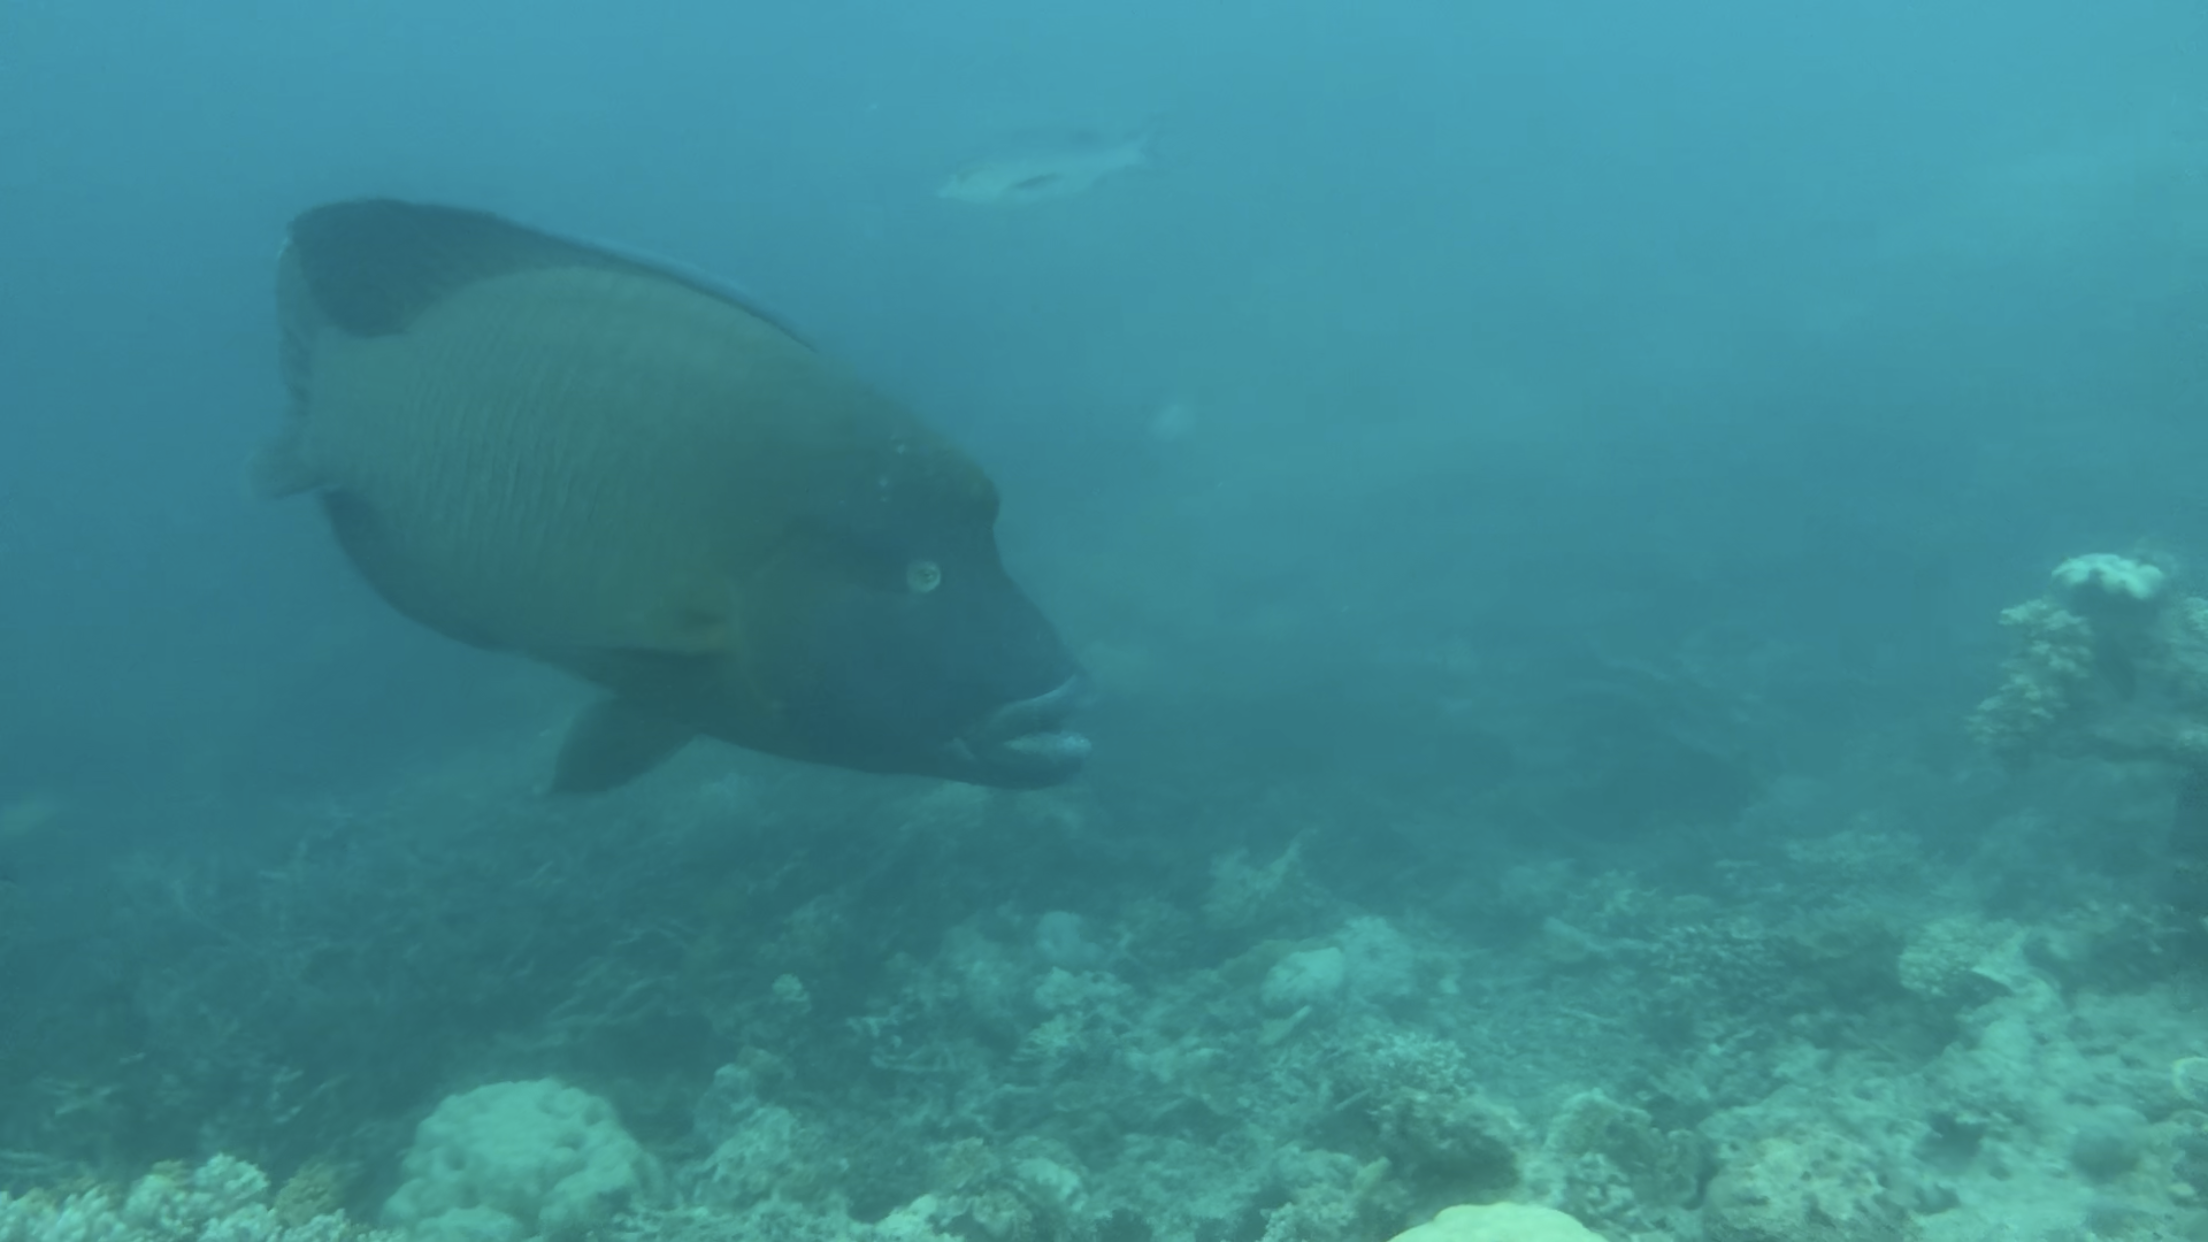 Biggest fish I have ever swam with!